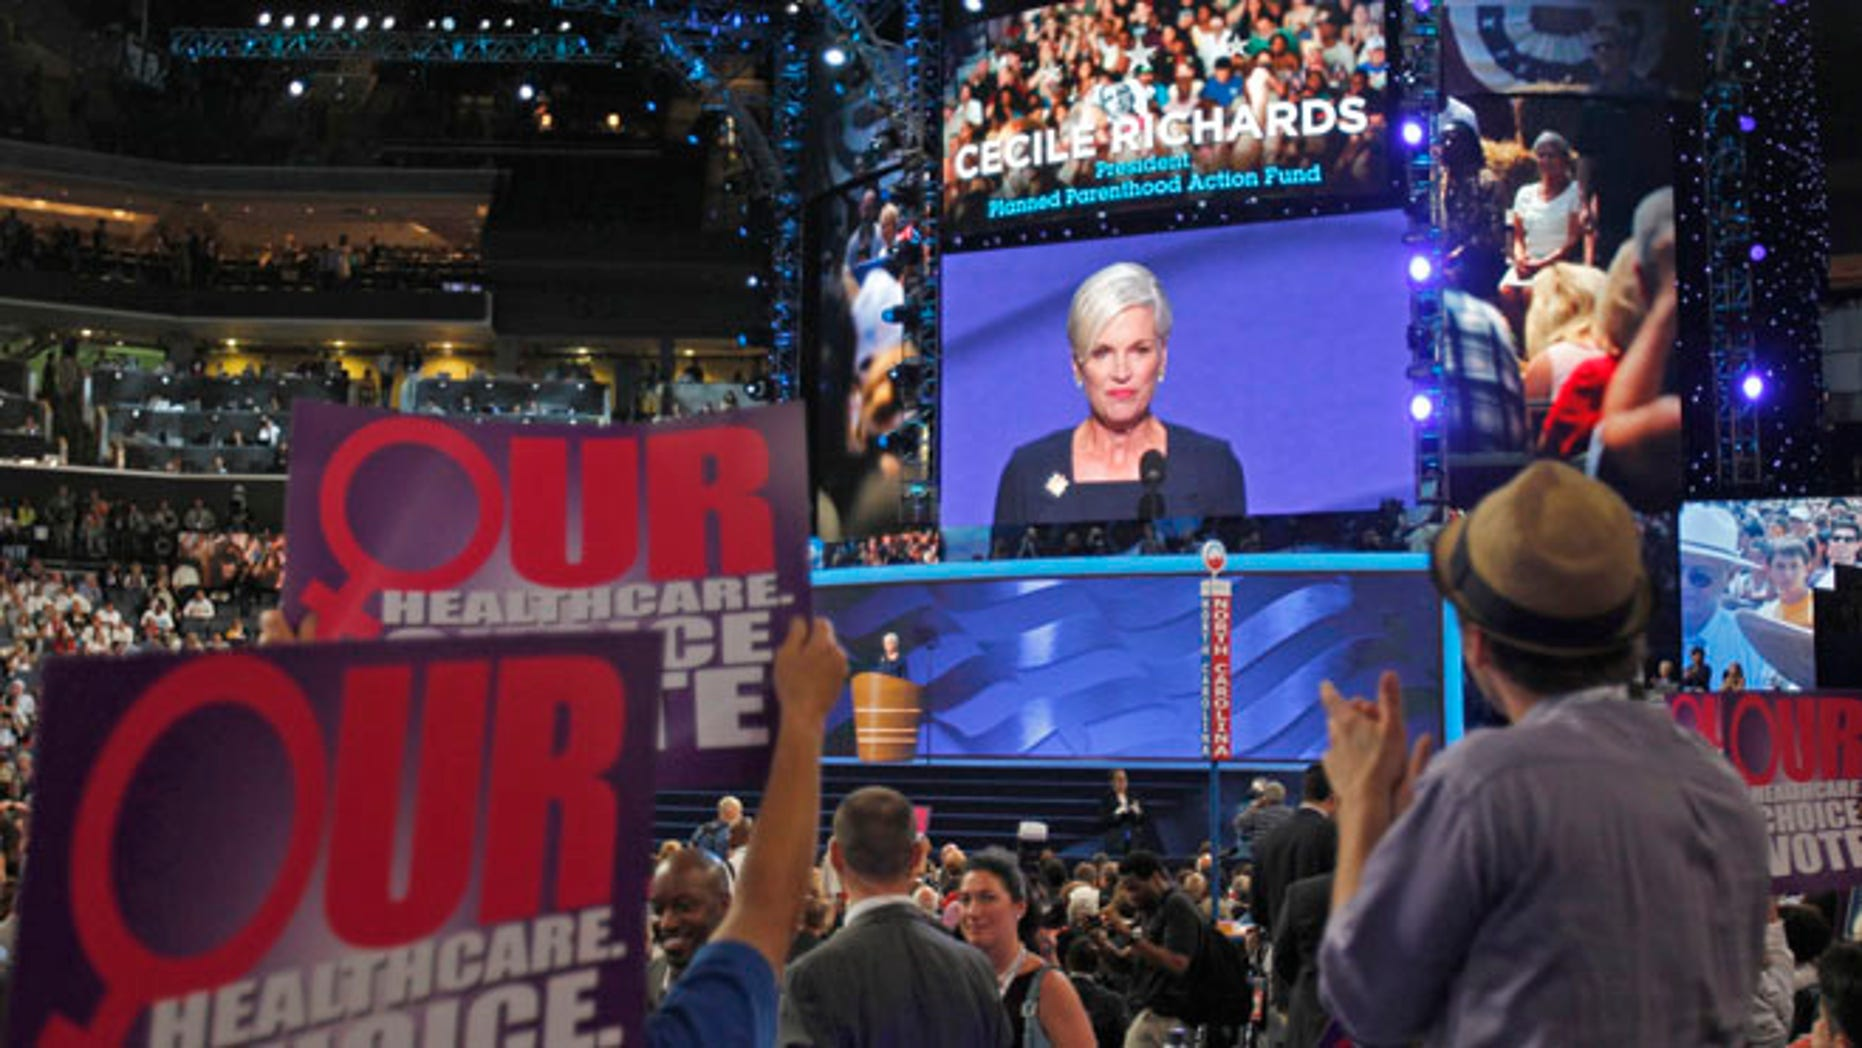 Sept. 5, 2012: Cecile Richards, president of Planned Parenthood Federation of America, addresses the second session of the Democratic National Convention in Charlotte, N.C.